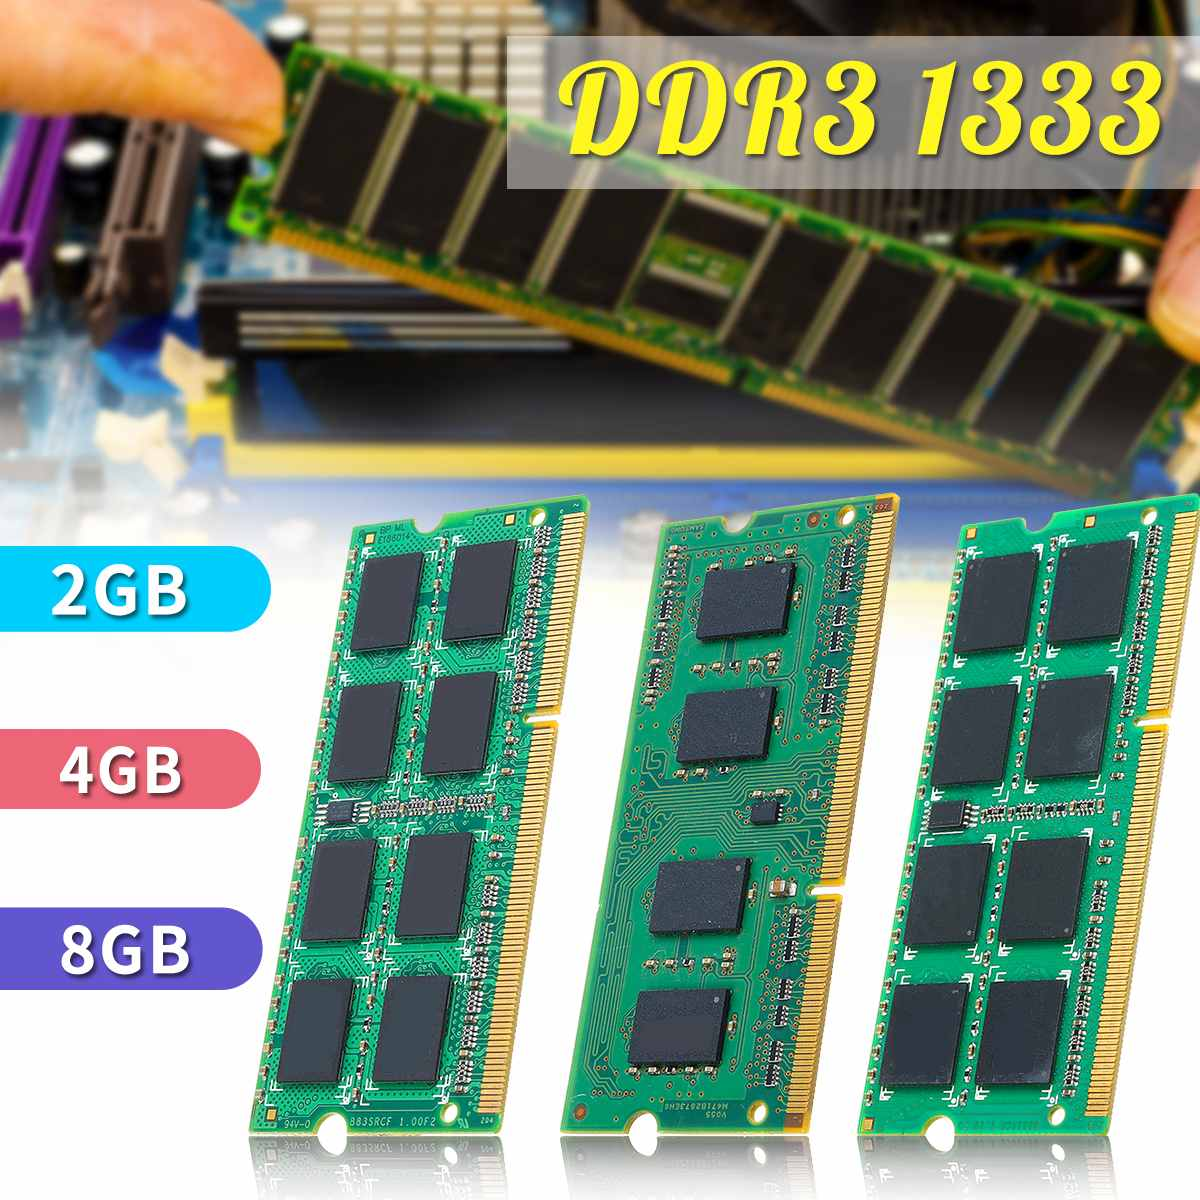 8GB 4GB 2GB Laptop Notebook Memory For Ram <font><b>DDR3</b></font> 1333mhz <font><b>PC3</b></font>-<font><b>10600S</b></font> 204 PIN SO-DIMM LOT image